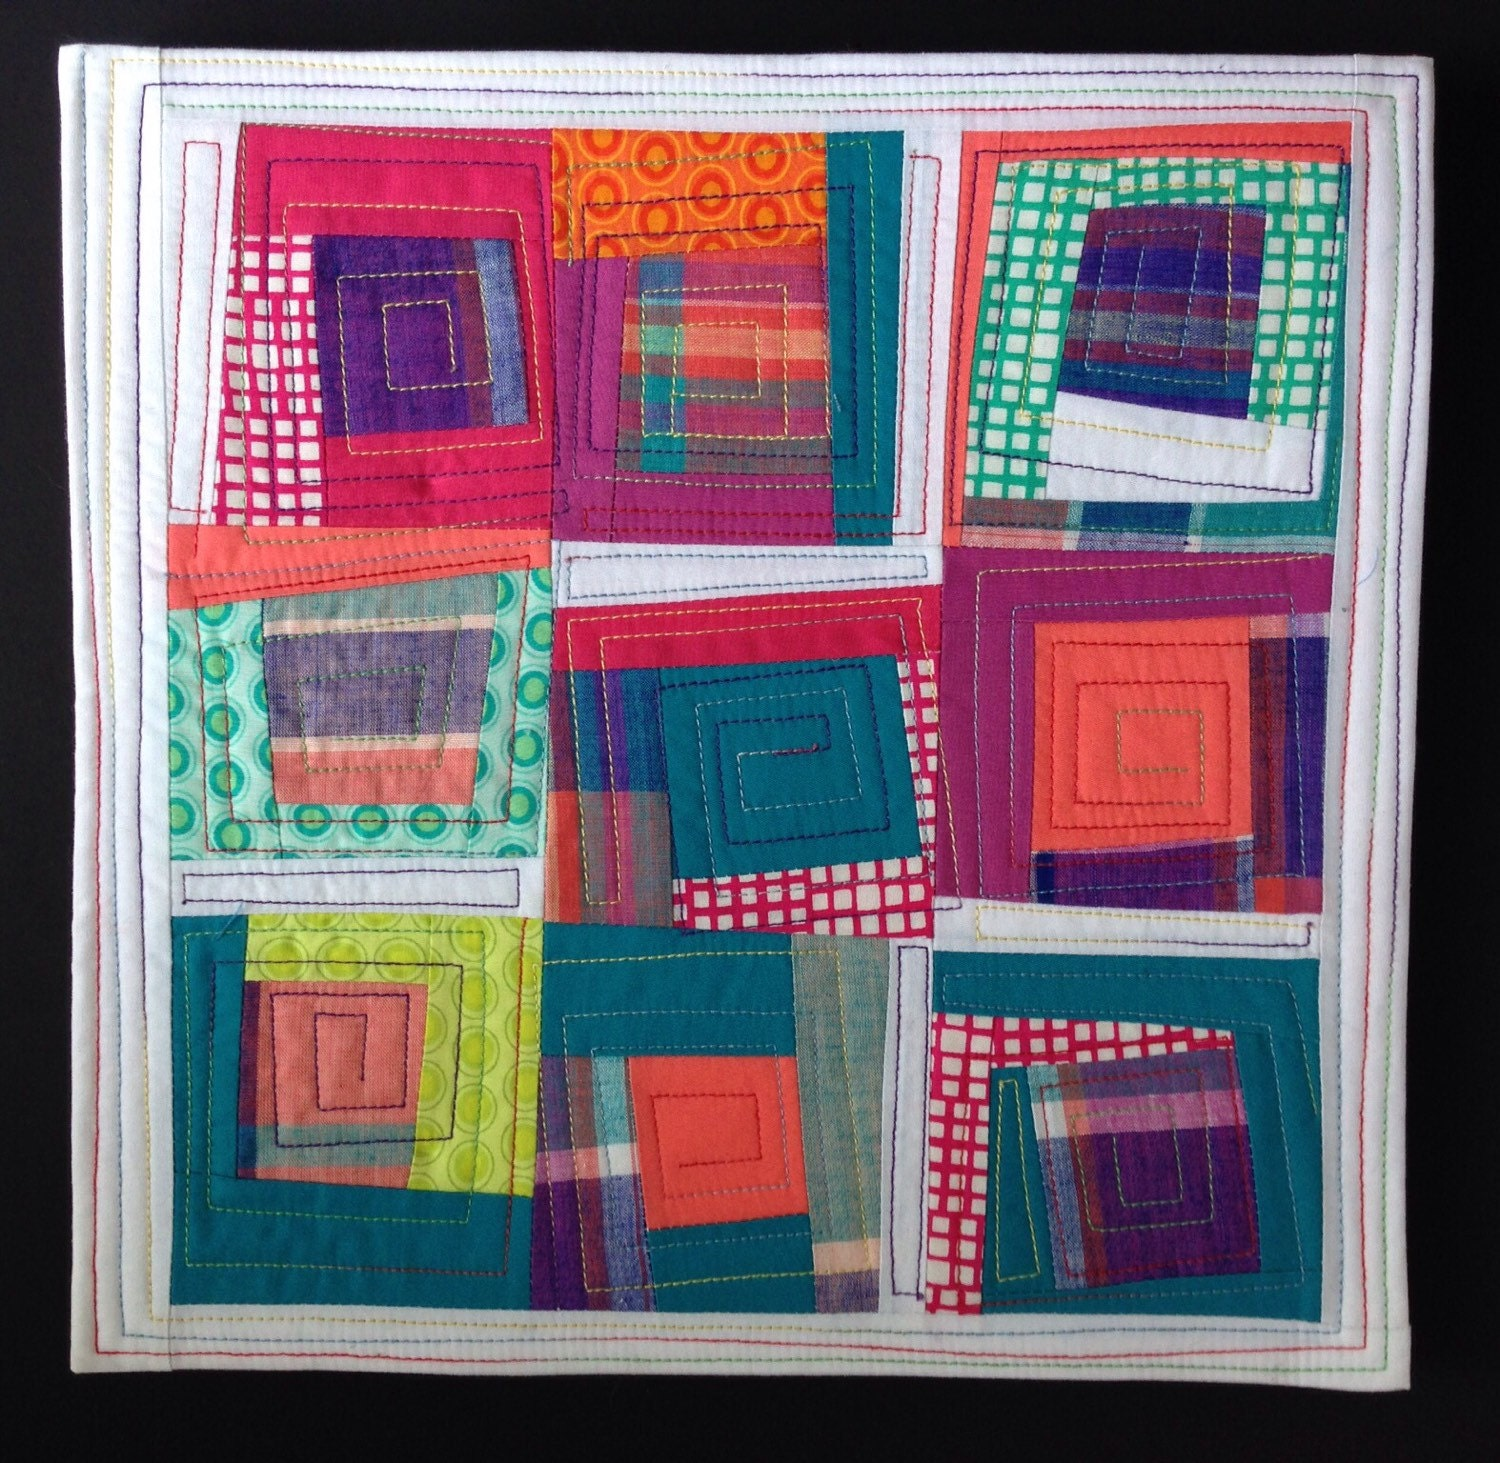 Modern log cabin quilt square by stitchesnquilts on etsy for Square log cabin